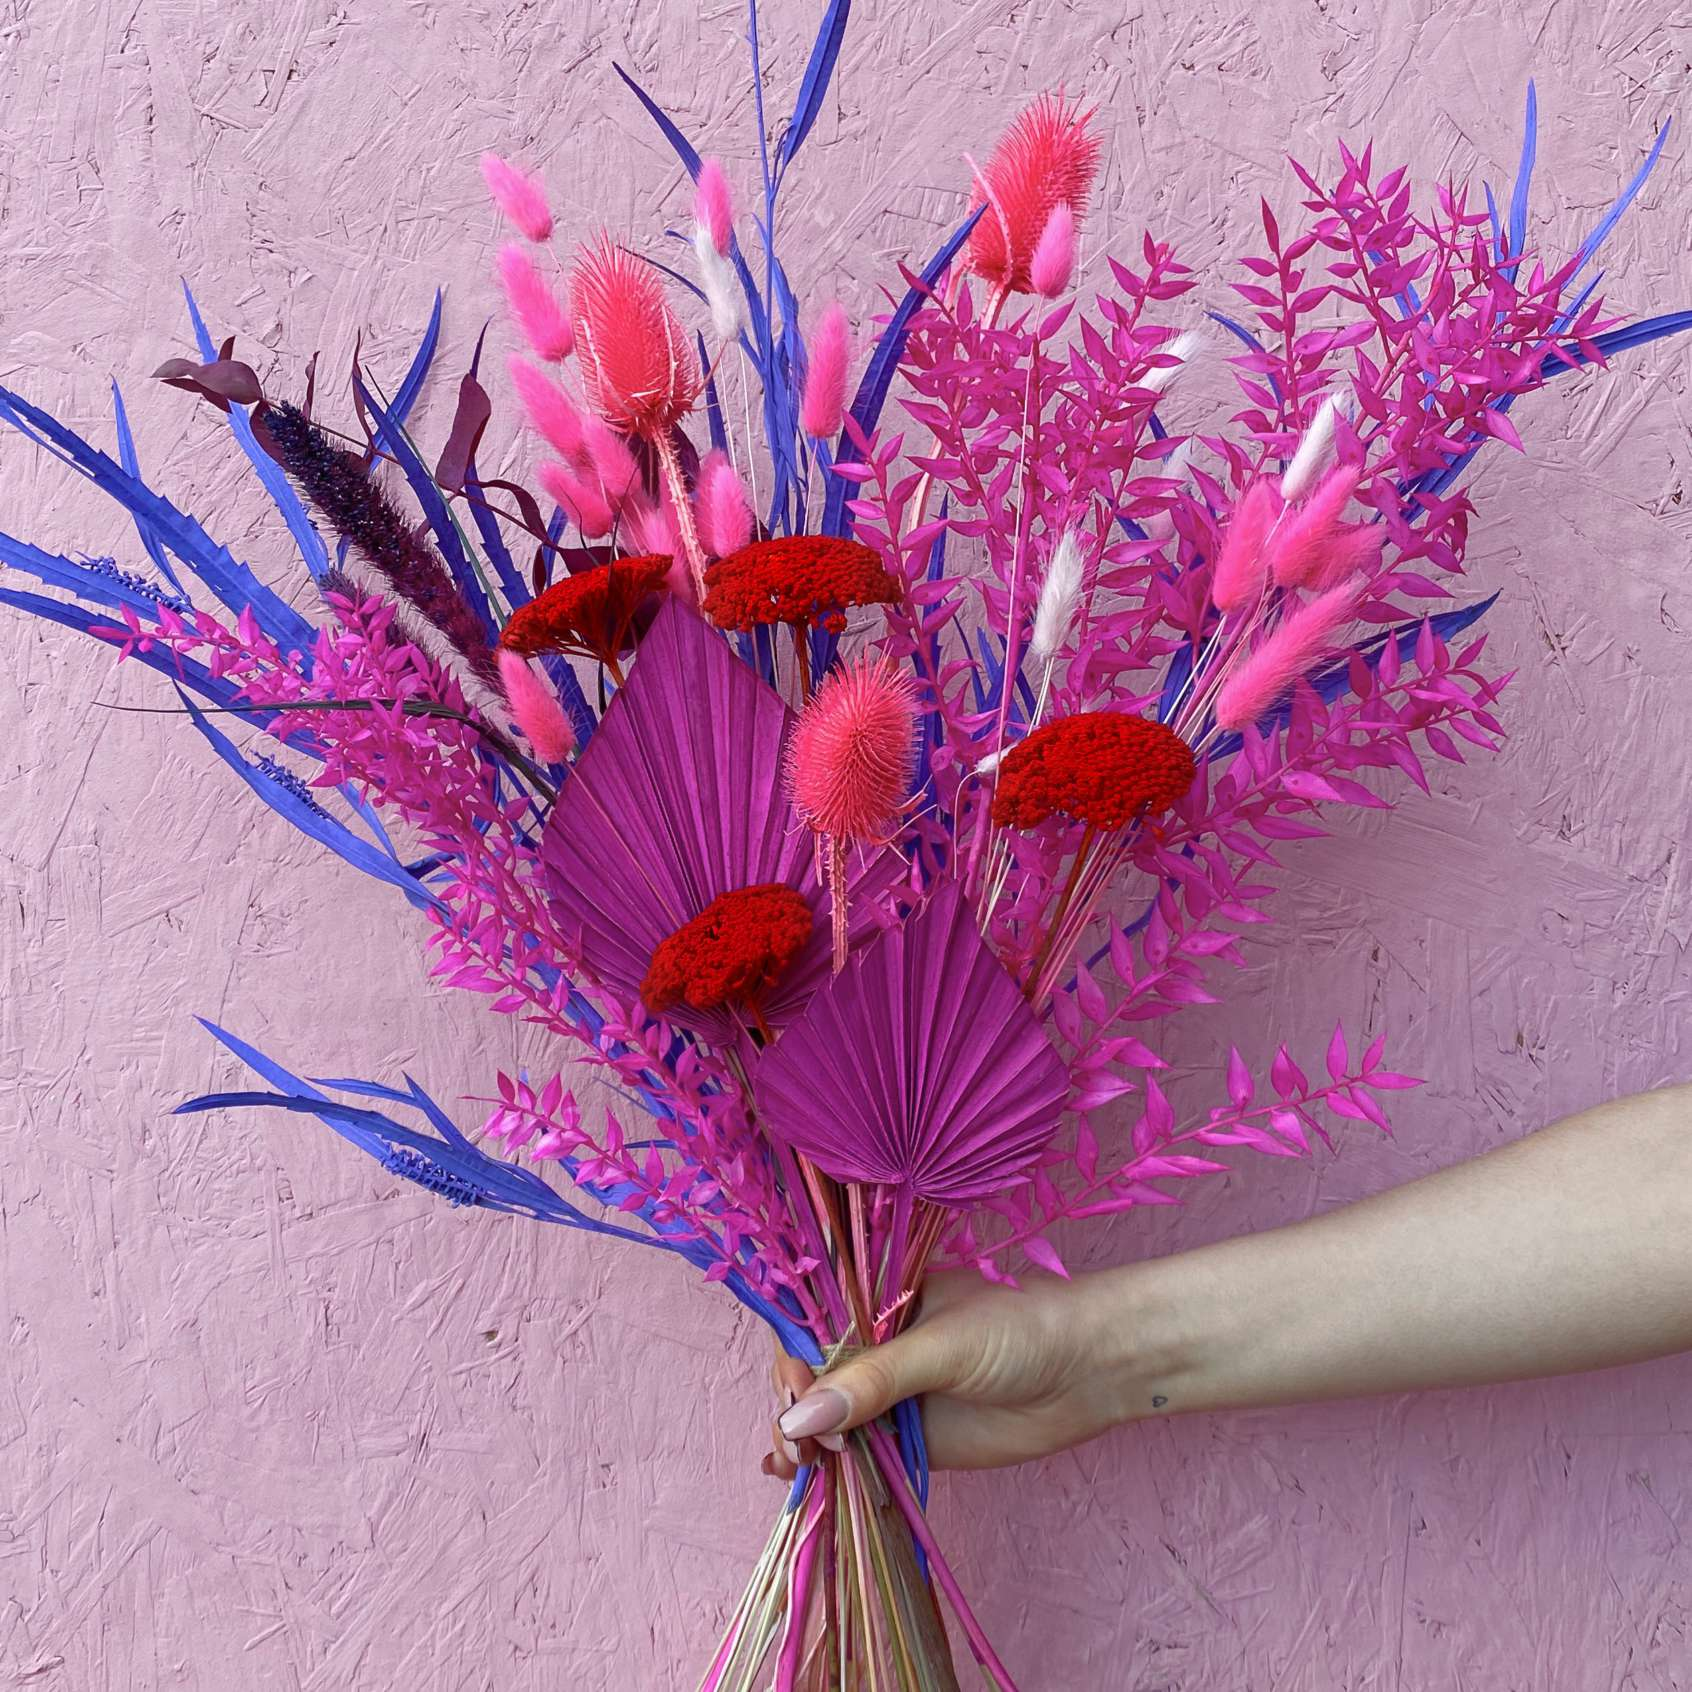 Monica Chandler Colourful Dried Flowers The Flower Plant